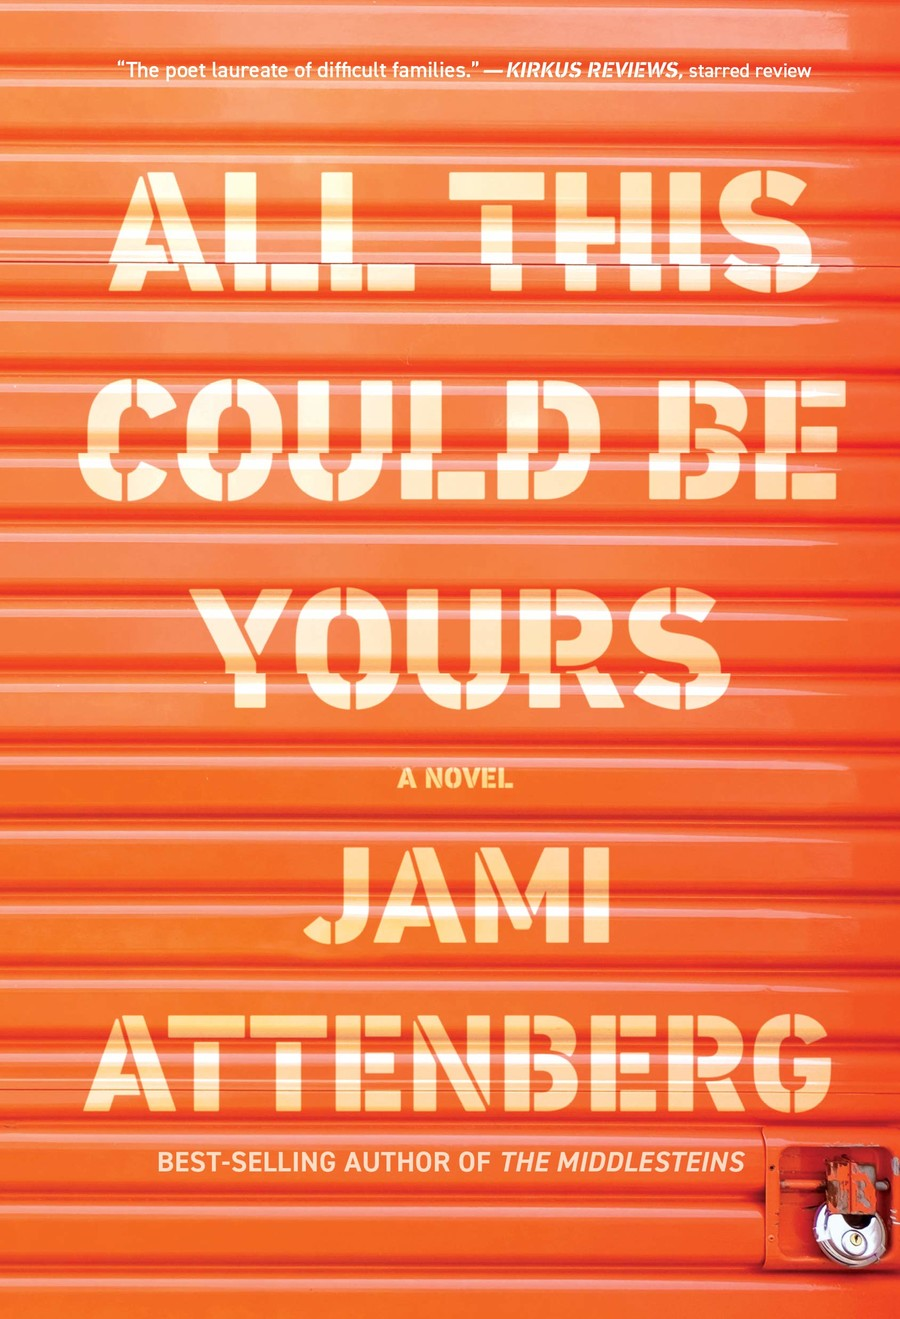 All This Could Be Yours by Jami Attenberg, an orange book with a storage container as the background.